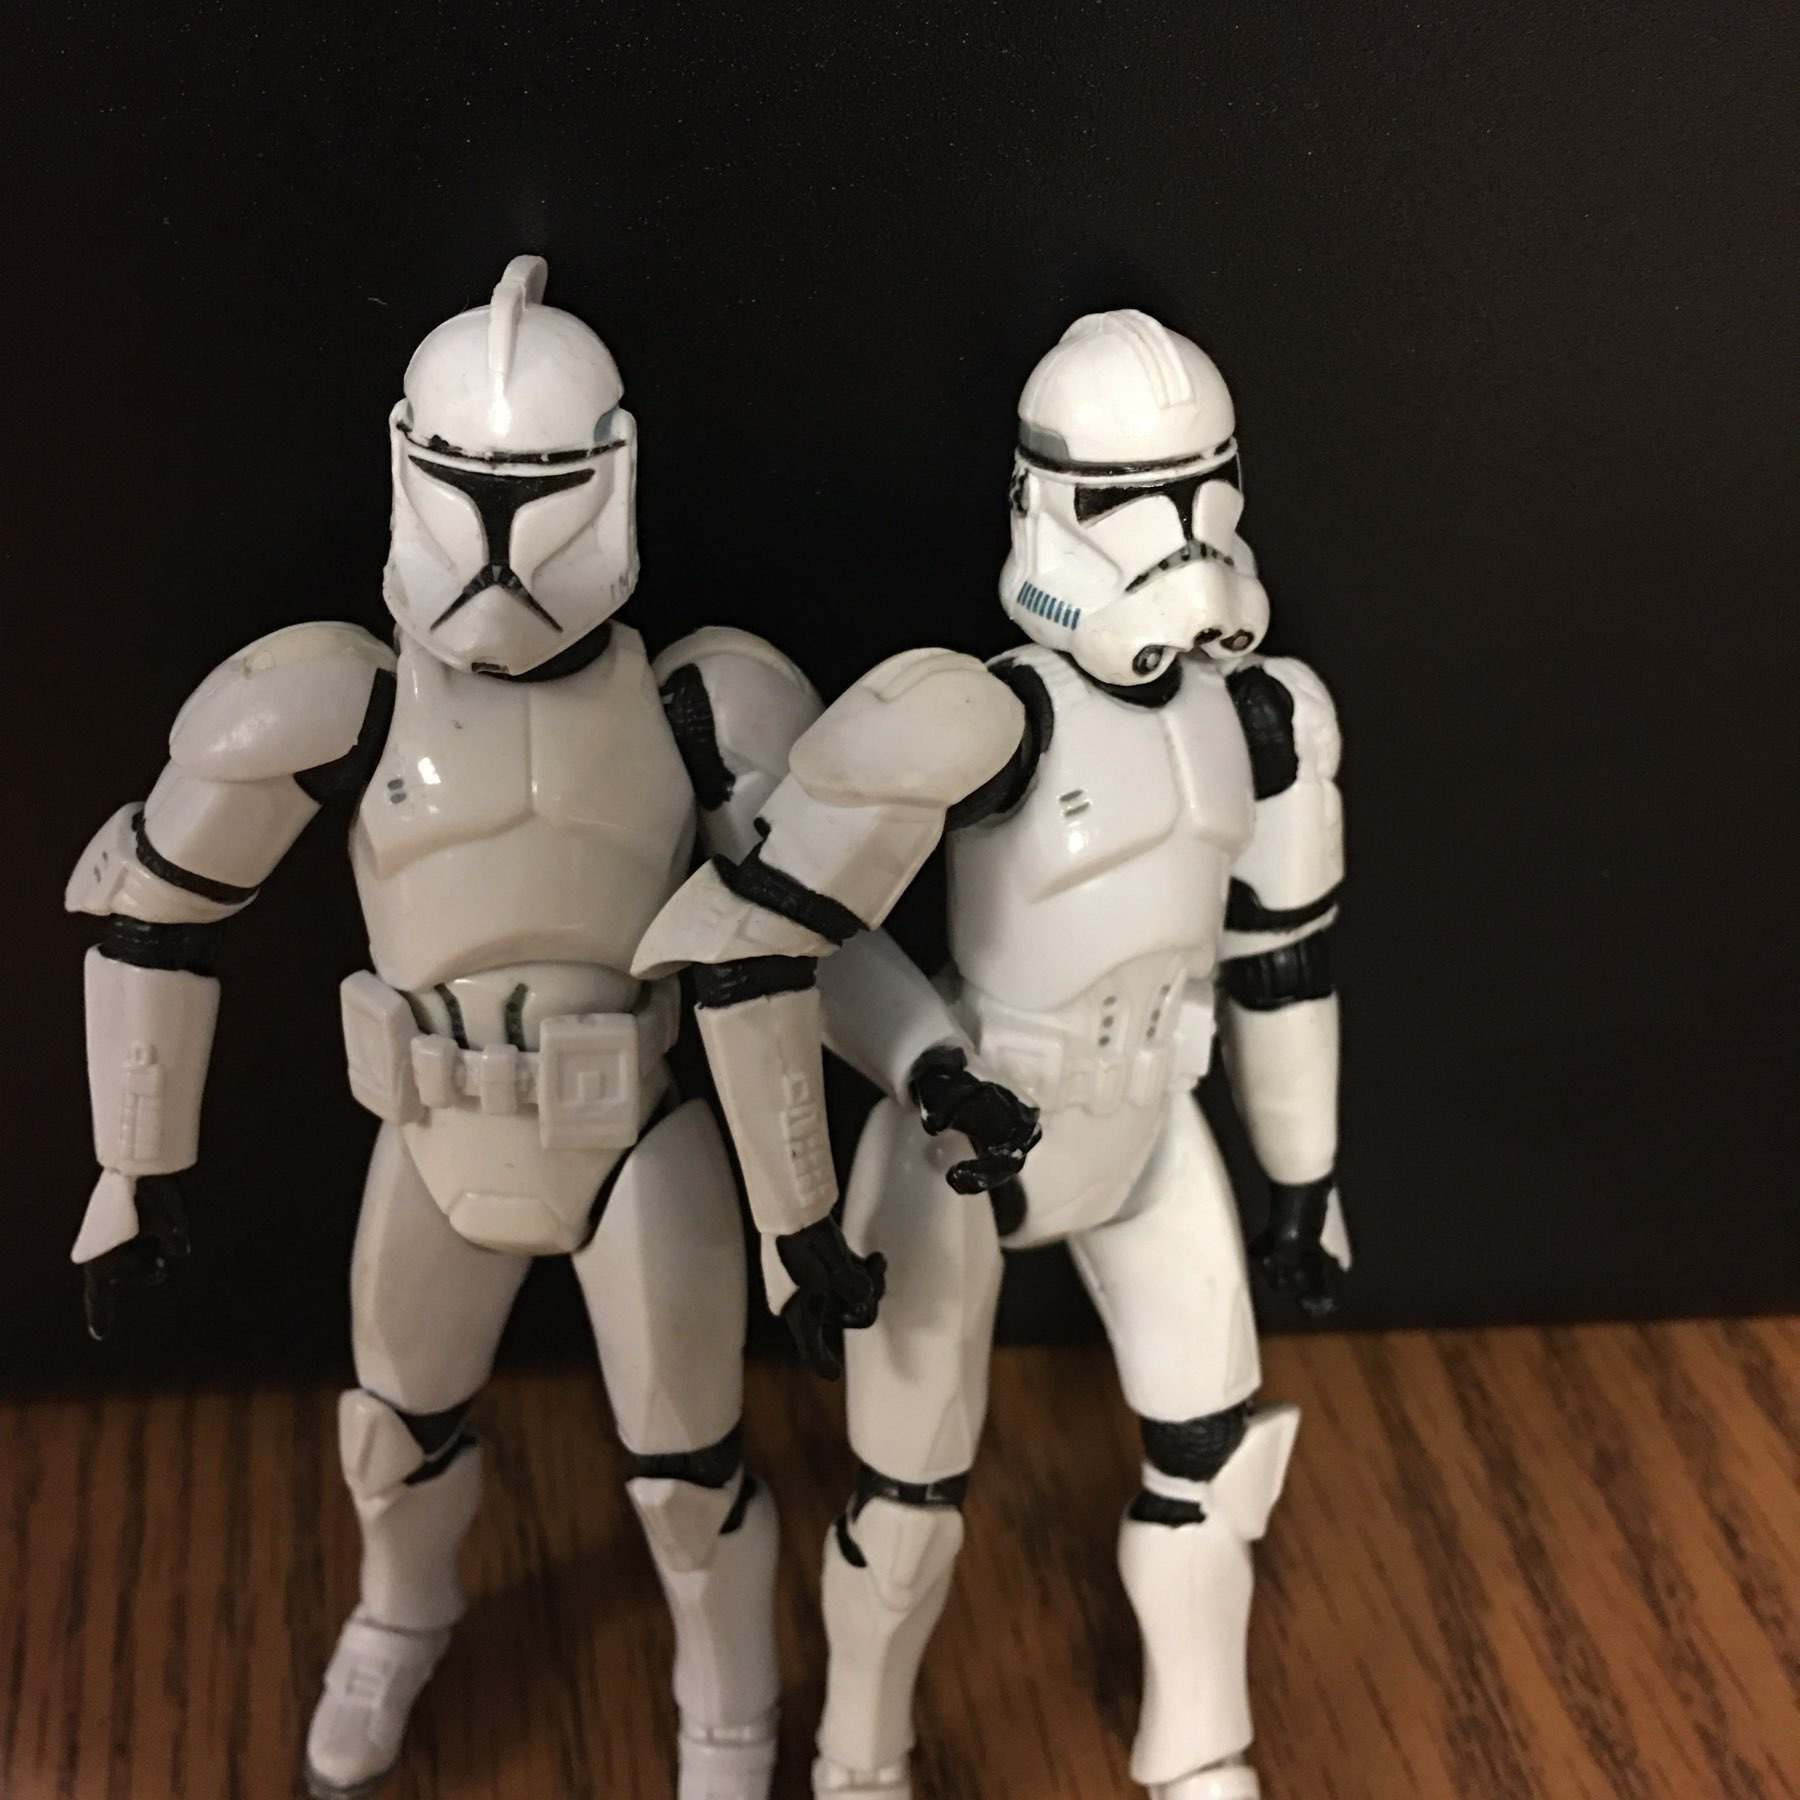 Two storm troopers holding hands.